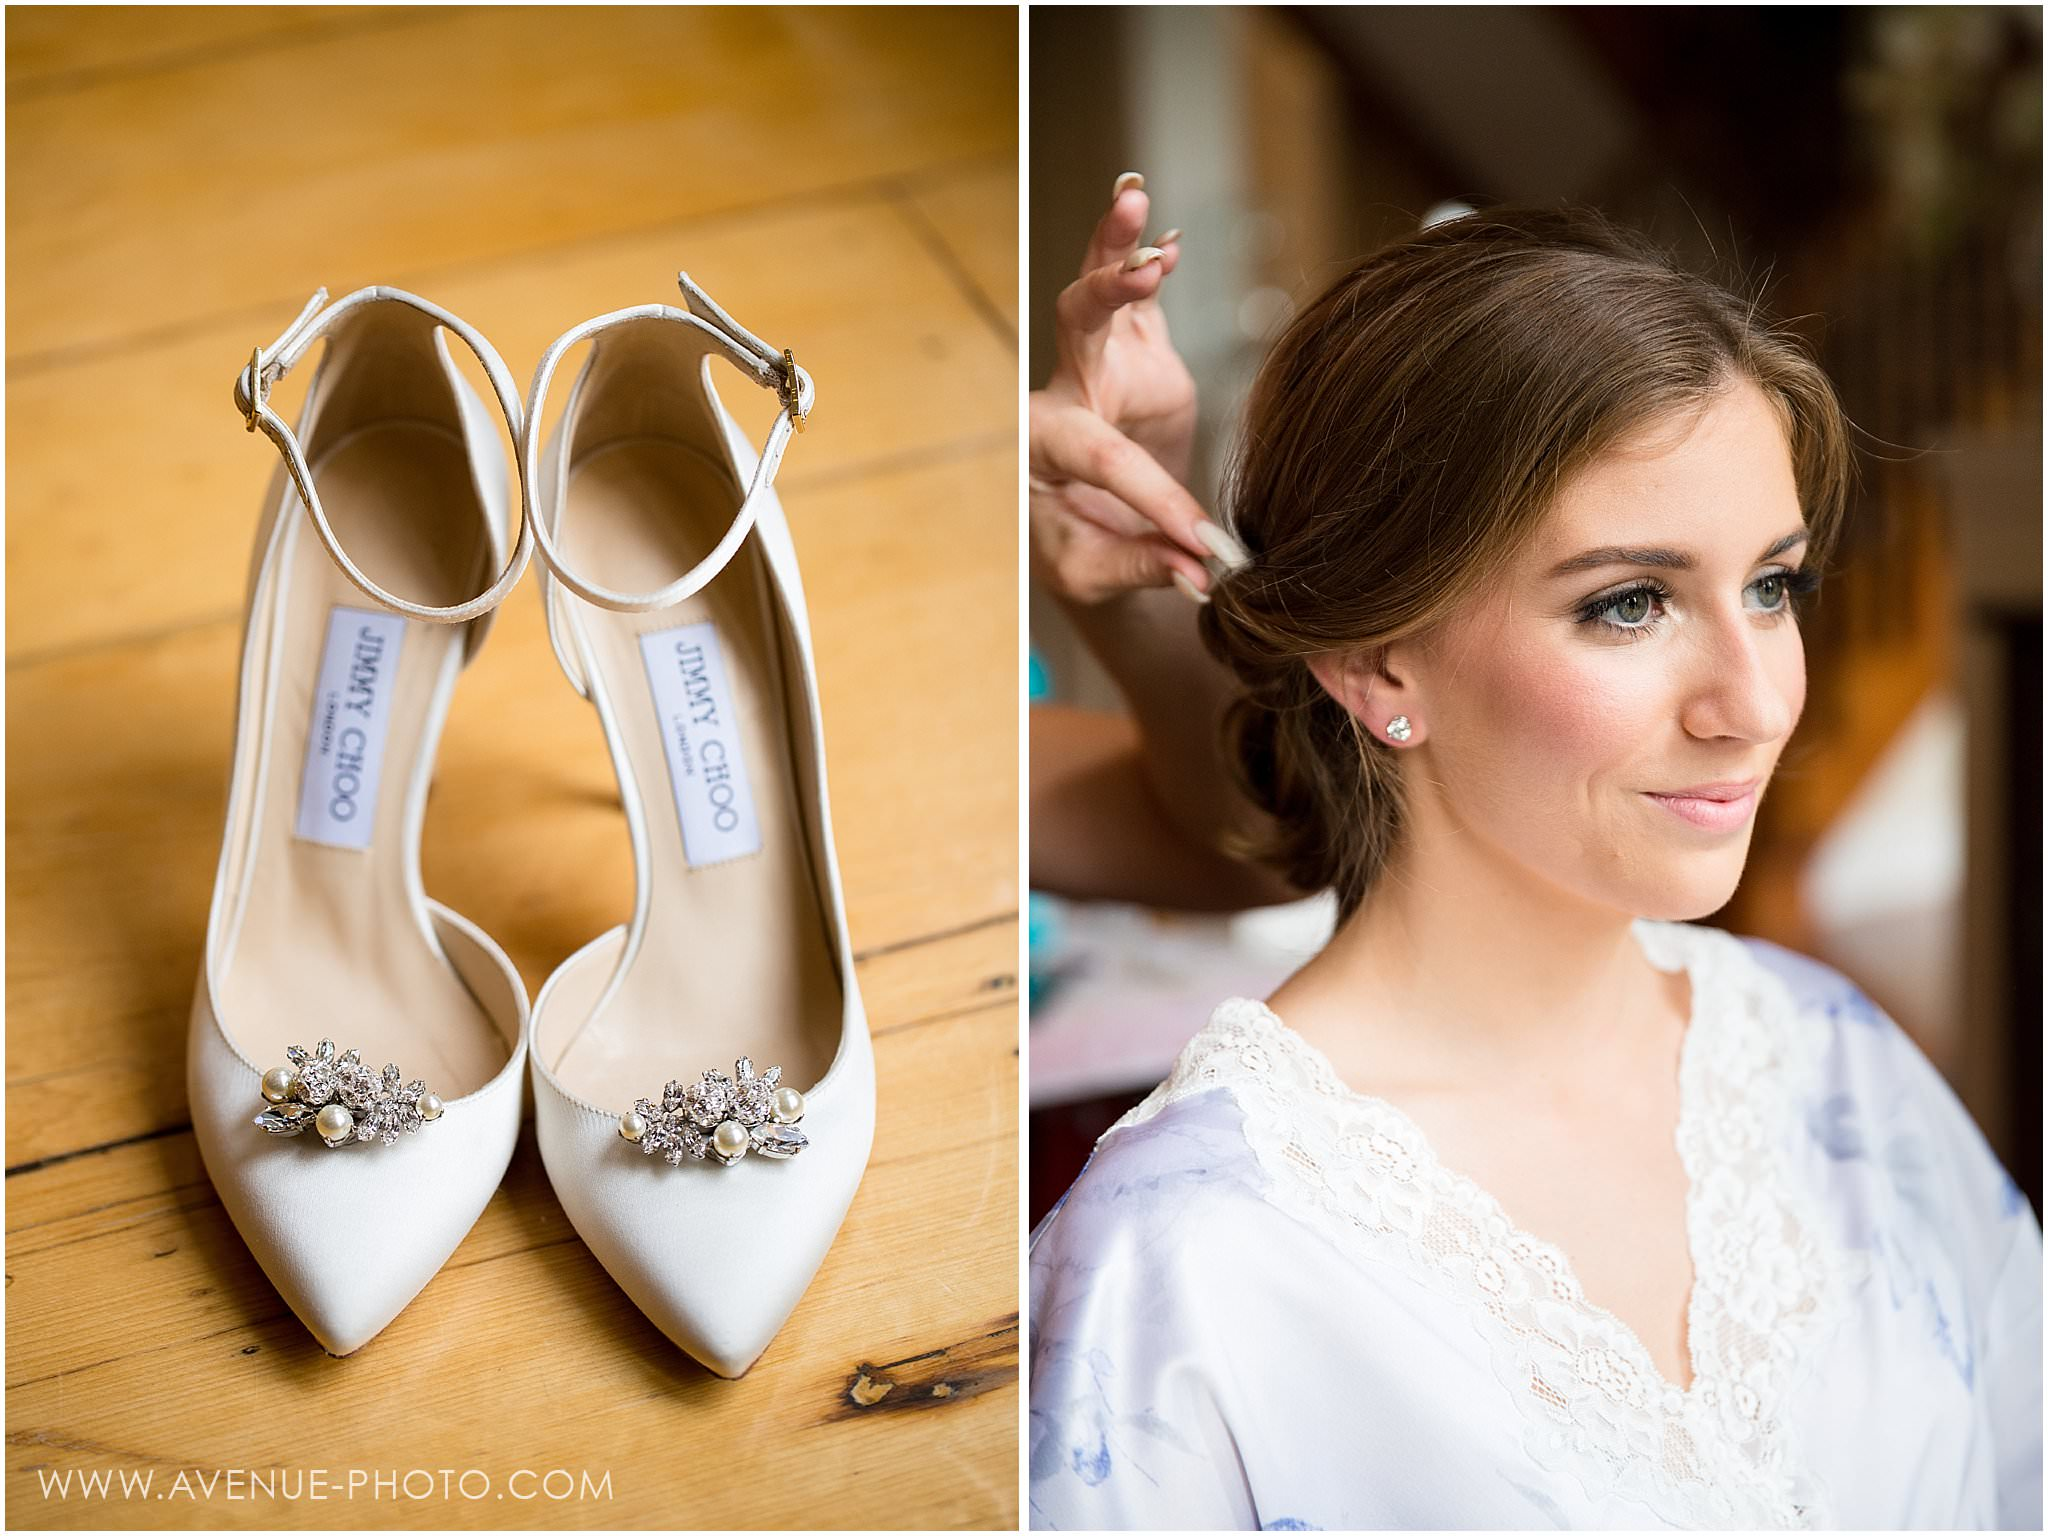 Jimmy Choo Wedding Shoes Toronto Wedding Photographer Avenue Photo